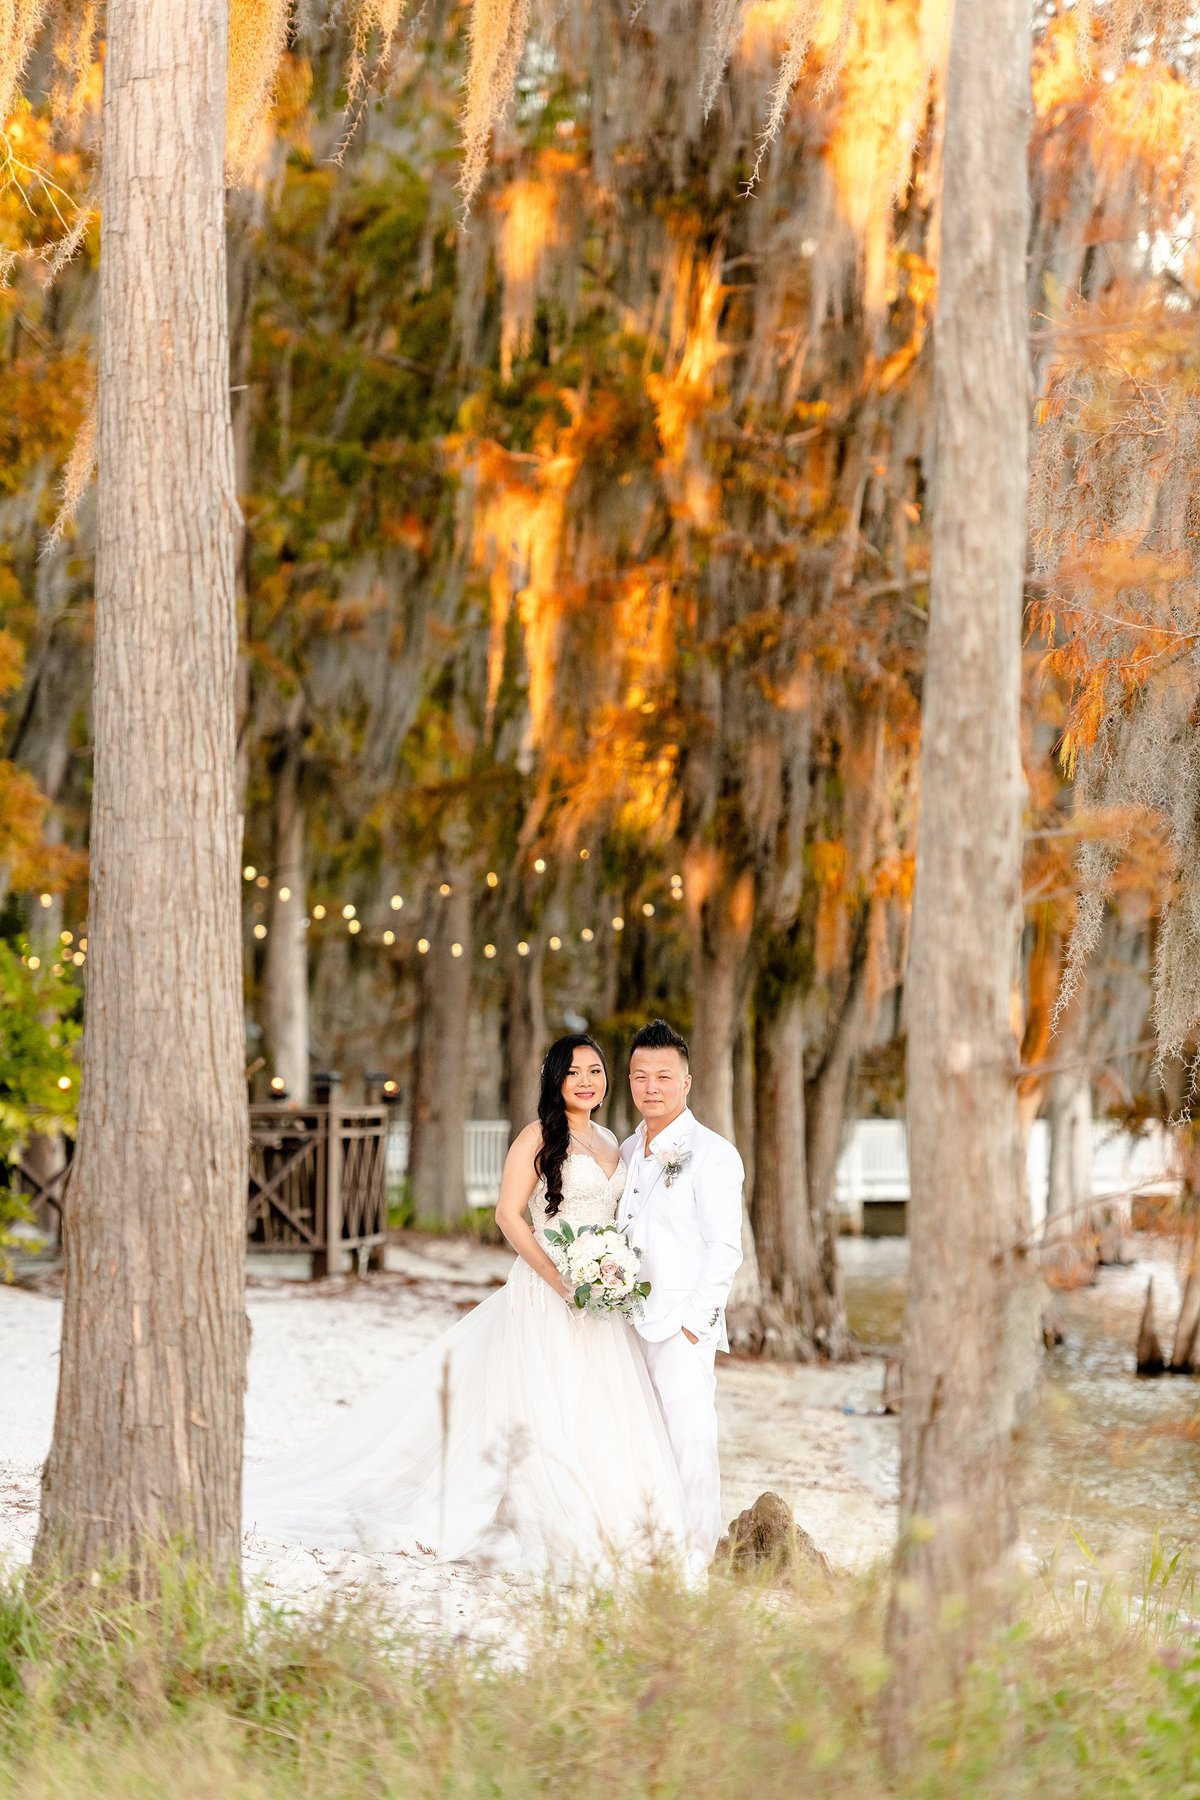 Wedding at Paradise Cove | Orlando Wedding Photographer